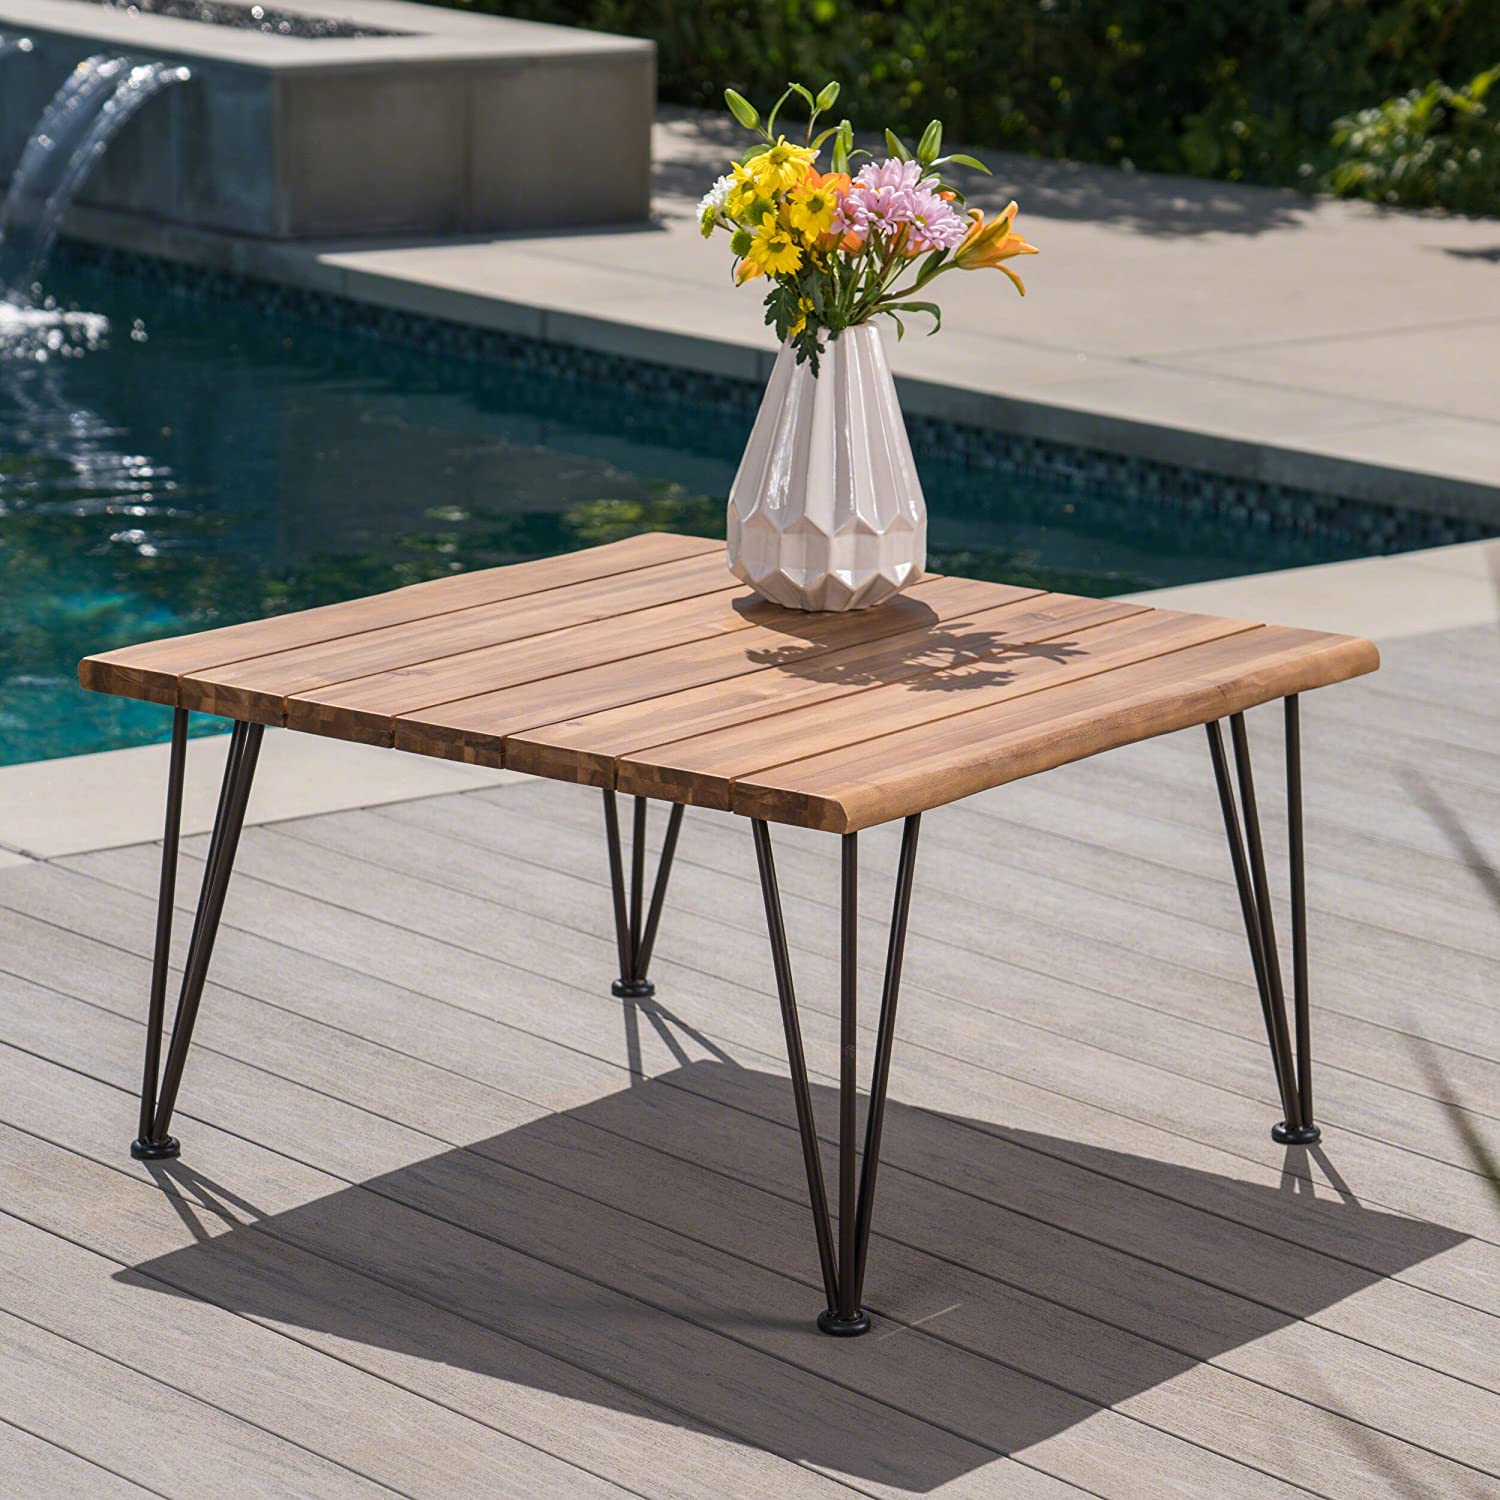 Amazon com great deal furniture zach outdoor industrial teak finish acacia wood coffee table with rustic metal finish iron frame kitchen dining